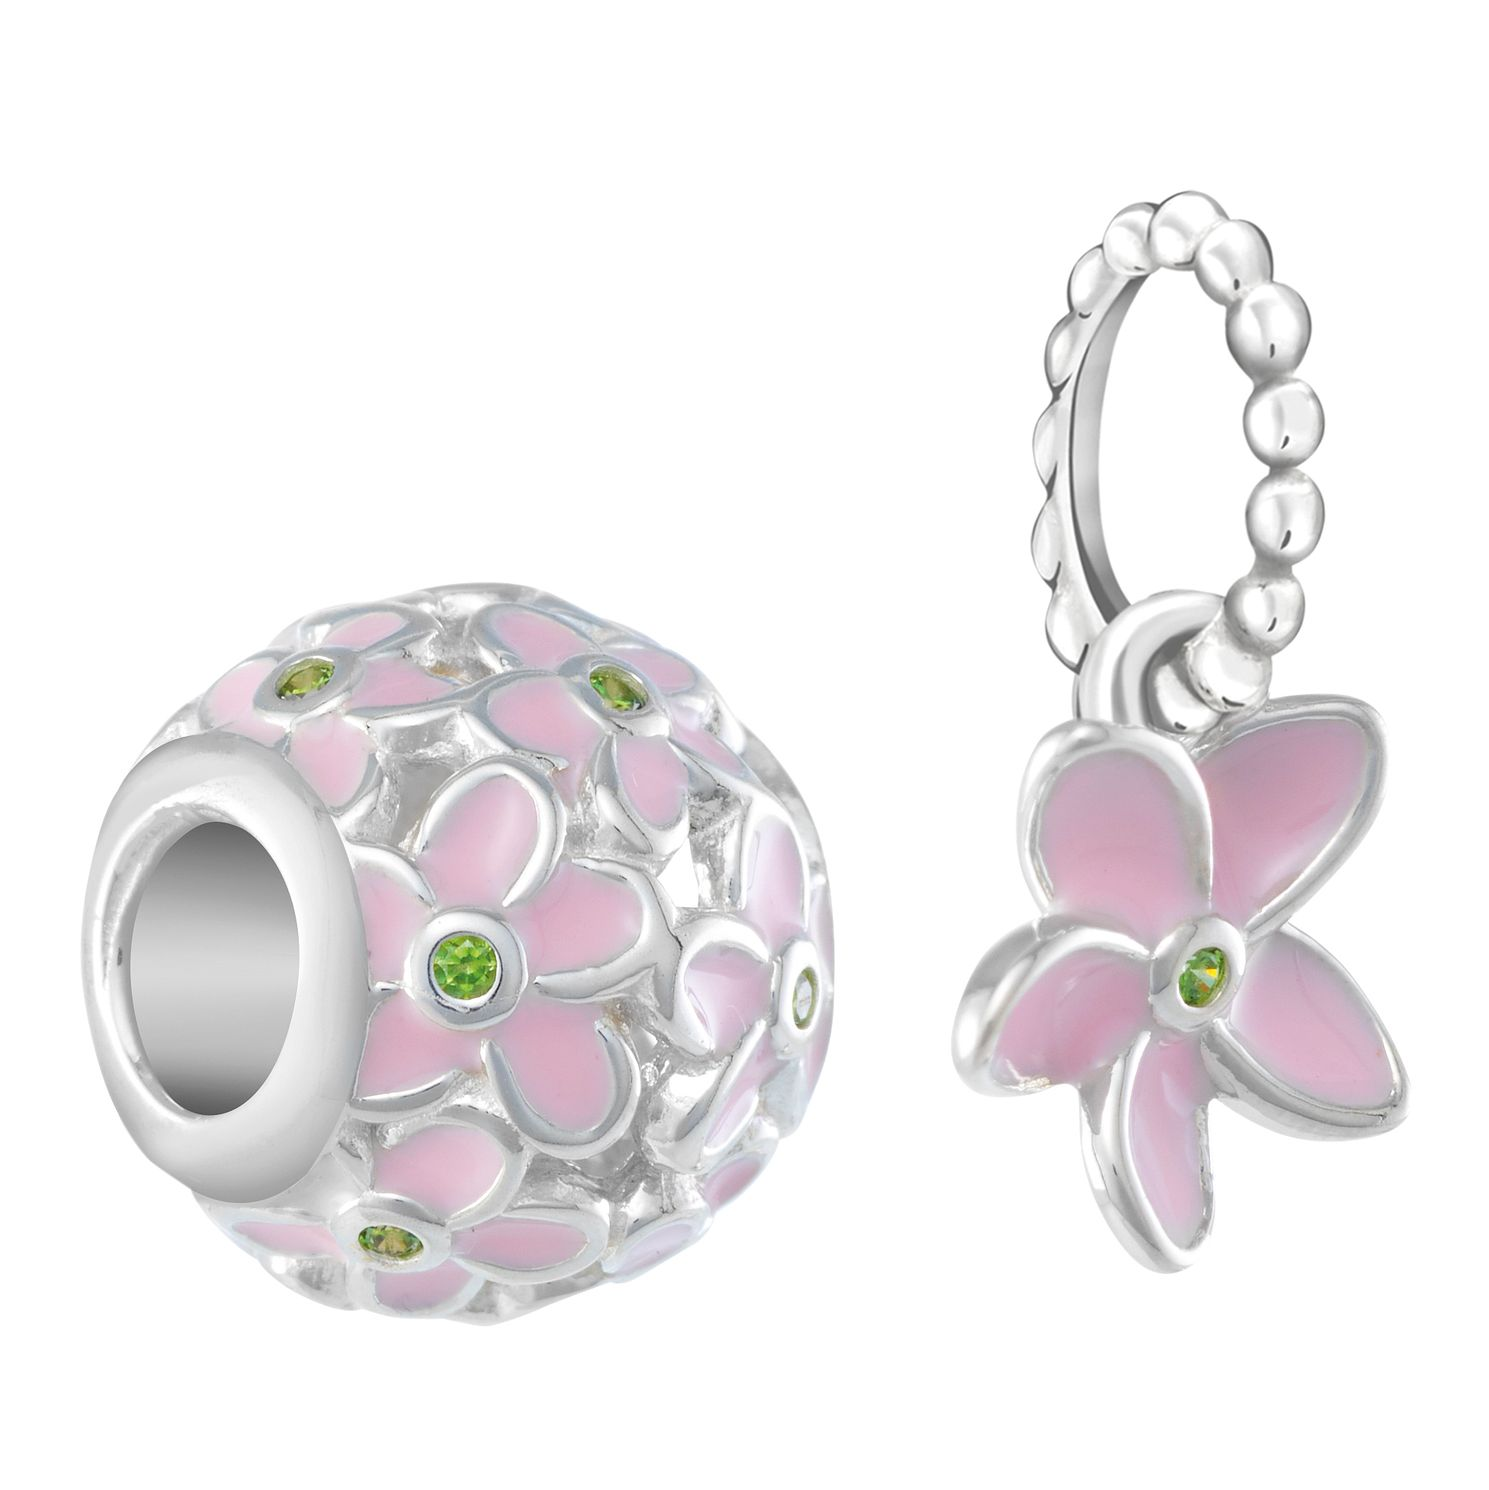 Chamilia Plumeria Cubic Zirconia Two Piece Charm Set - Product number 3171817